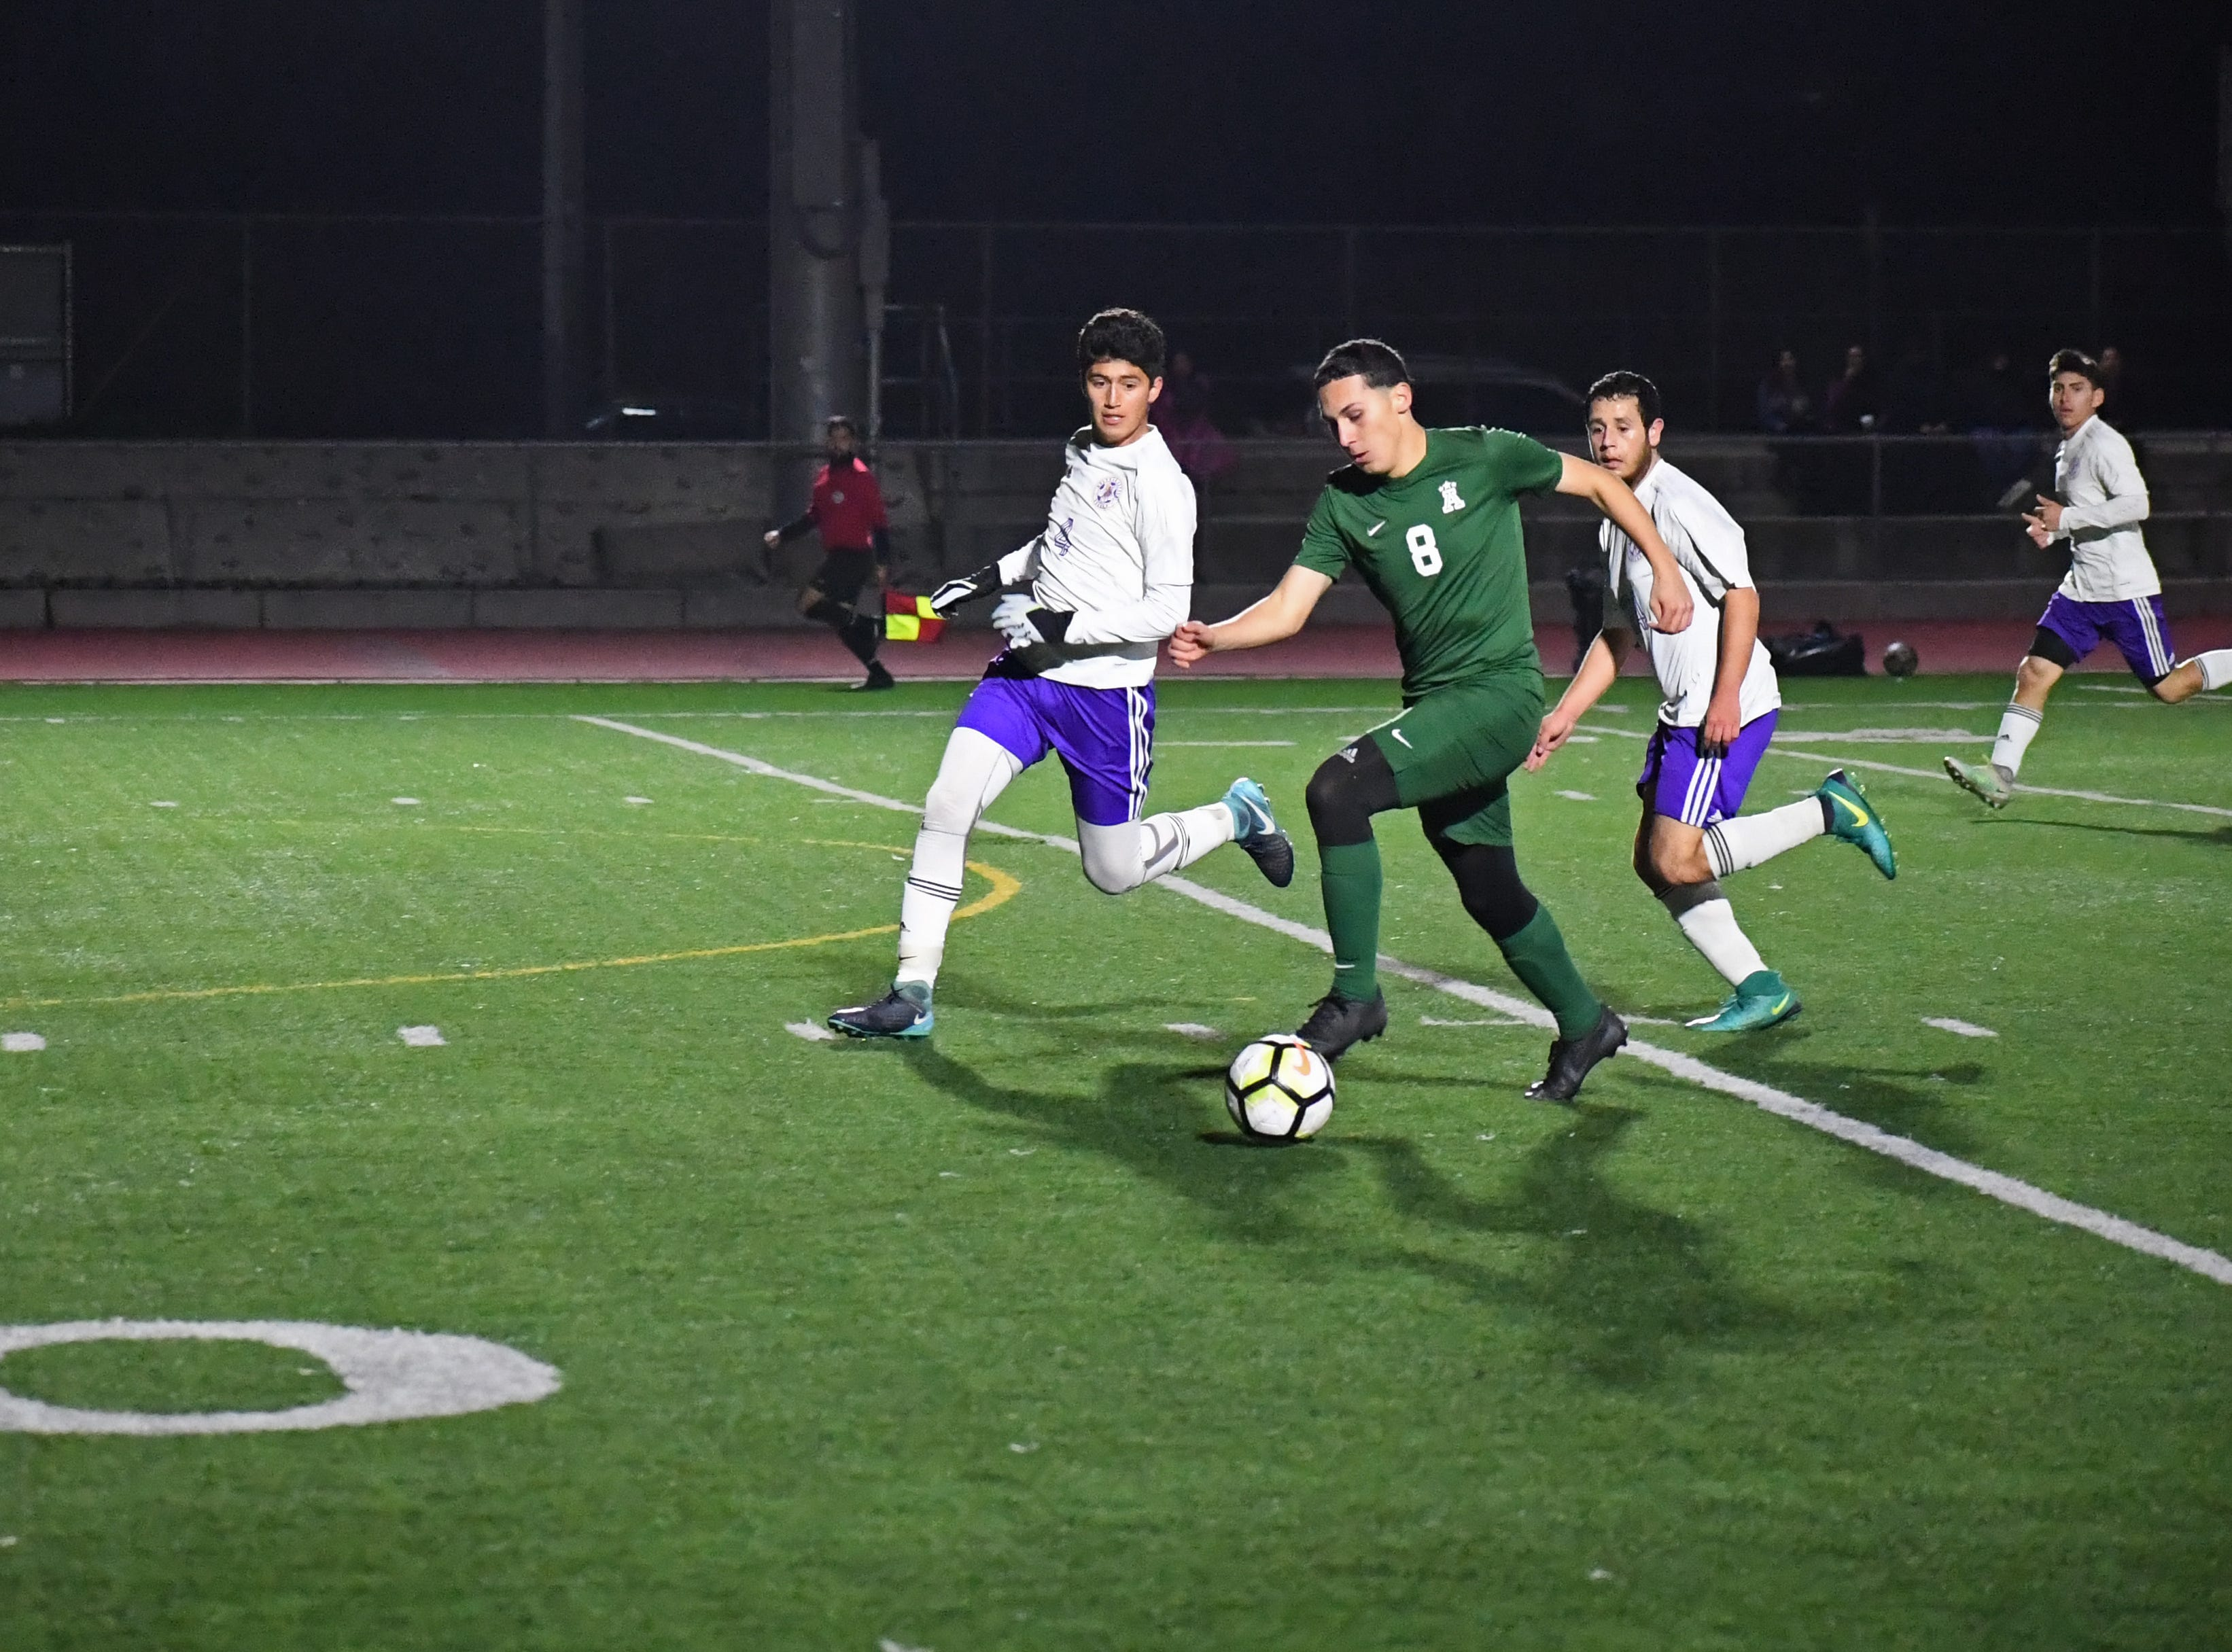 Alisal striker Armando Alvarez (8) sprints past two defenders.